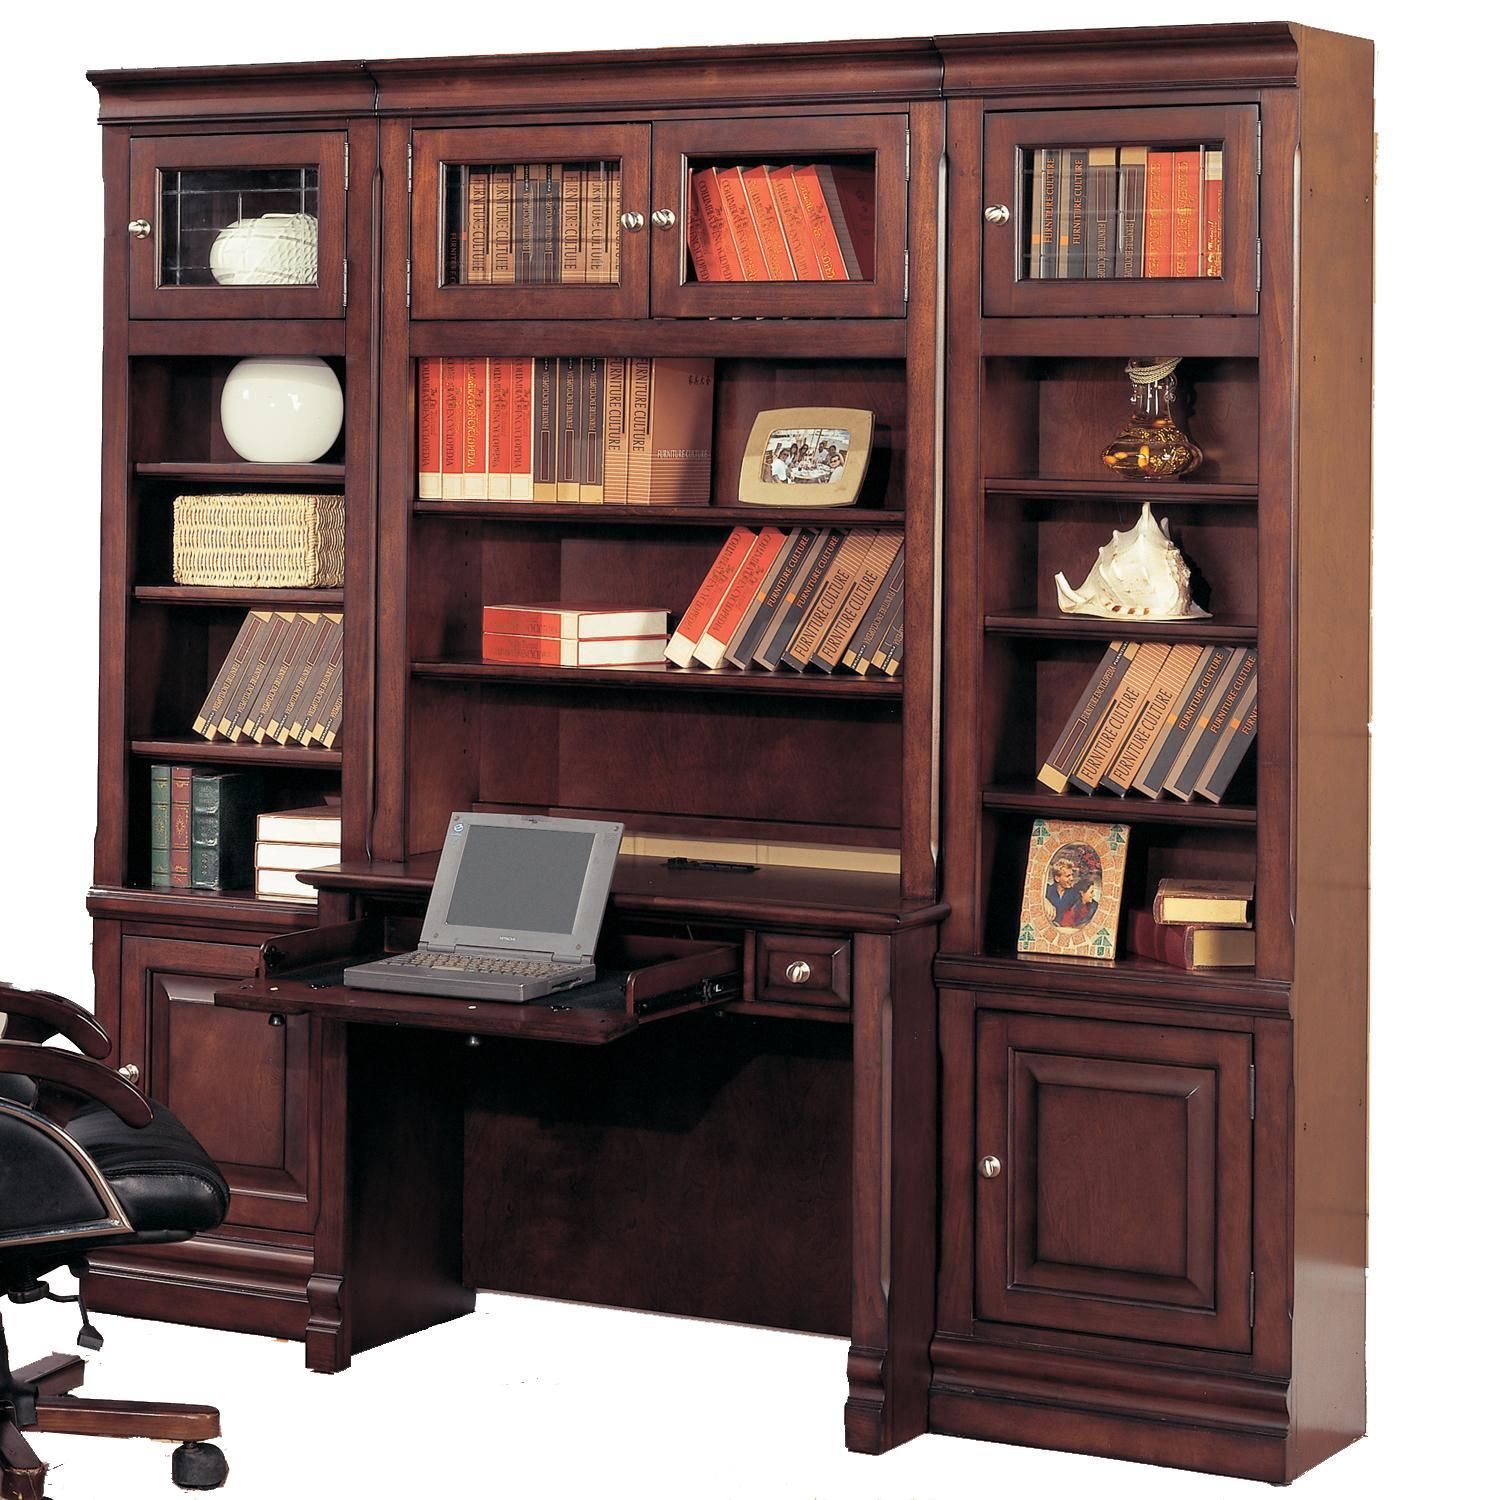 Sterling Library Desk And Bookcase Wall By Parker House